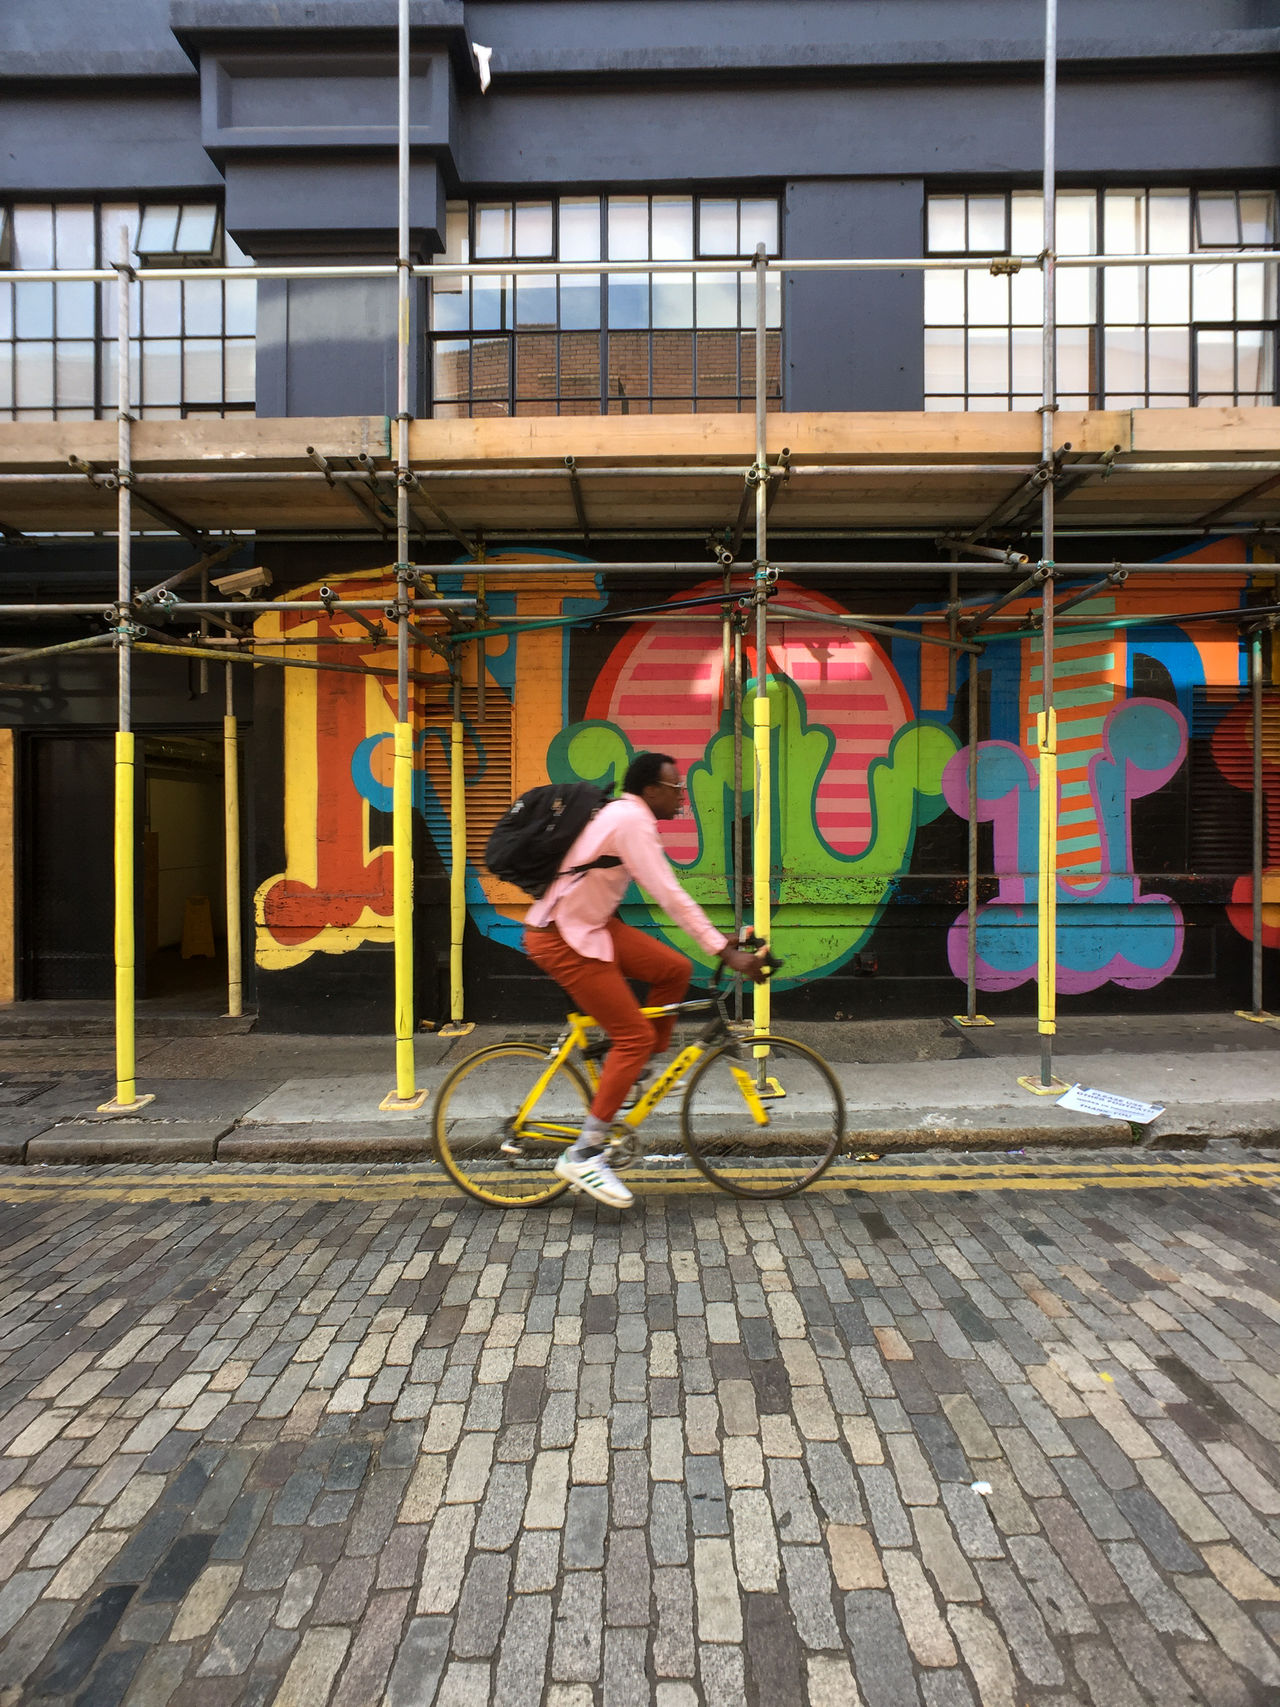 A man bicycles down a colorful street in the Shoreditch neighborhood of East London. Graffiti London Scaffolding Shoreditch Adult Architecture Bicycle Building Exterior Built Structure City Day Editorial  Men One Person Outdoors People Real People Stone Material Street Photography Streetphotography Transportation